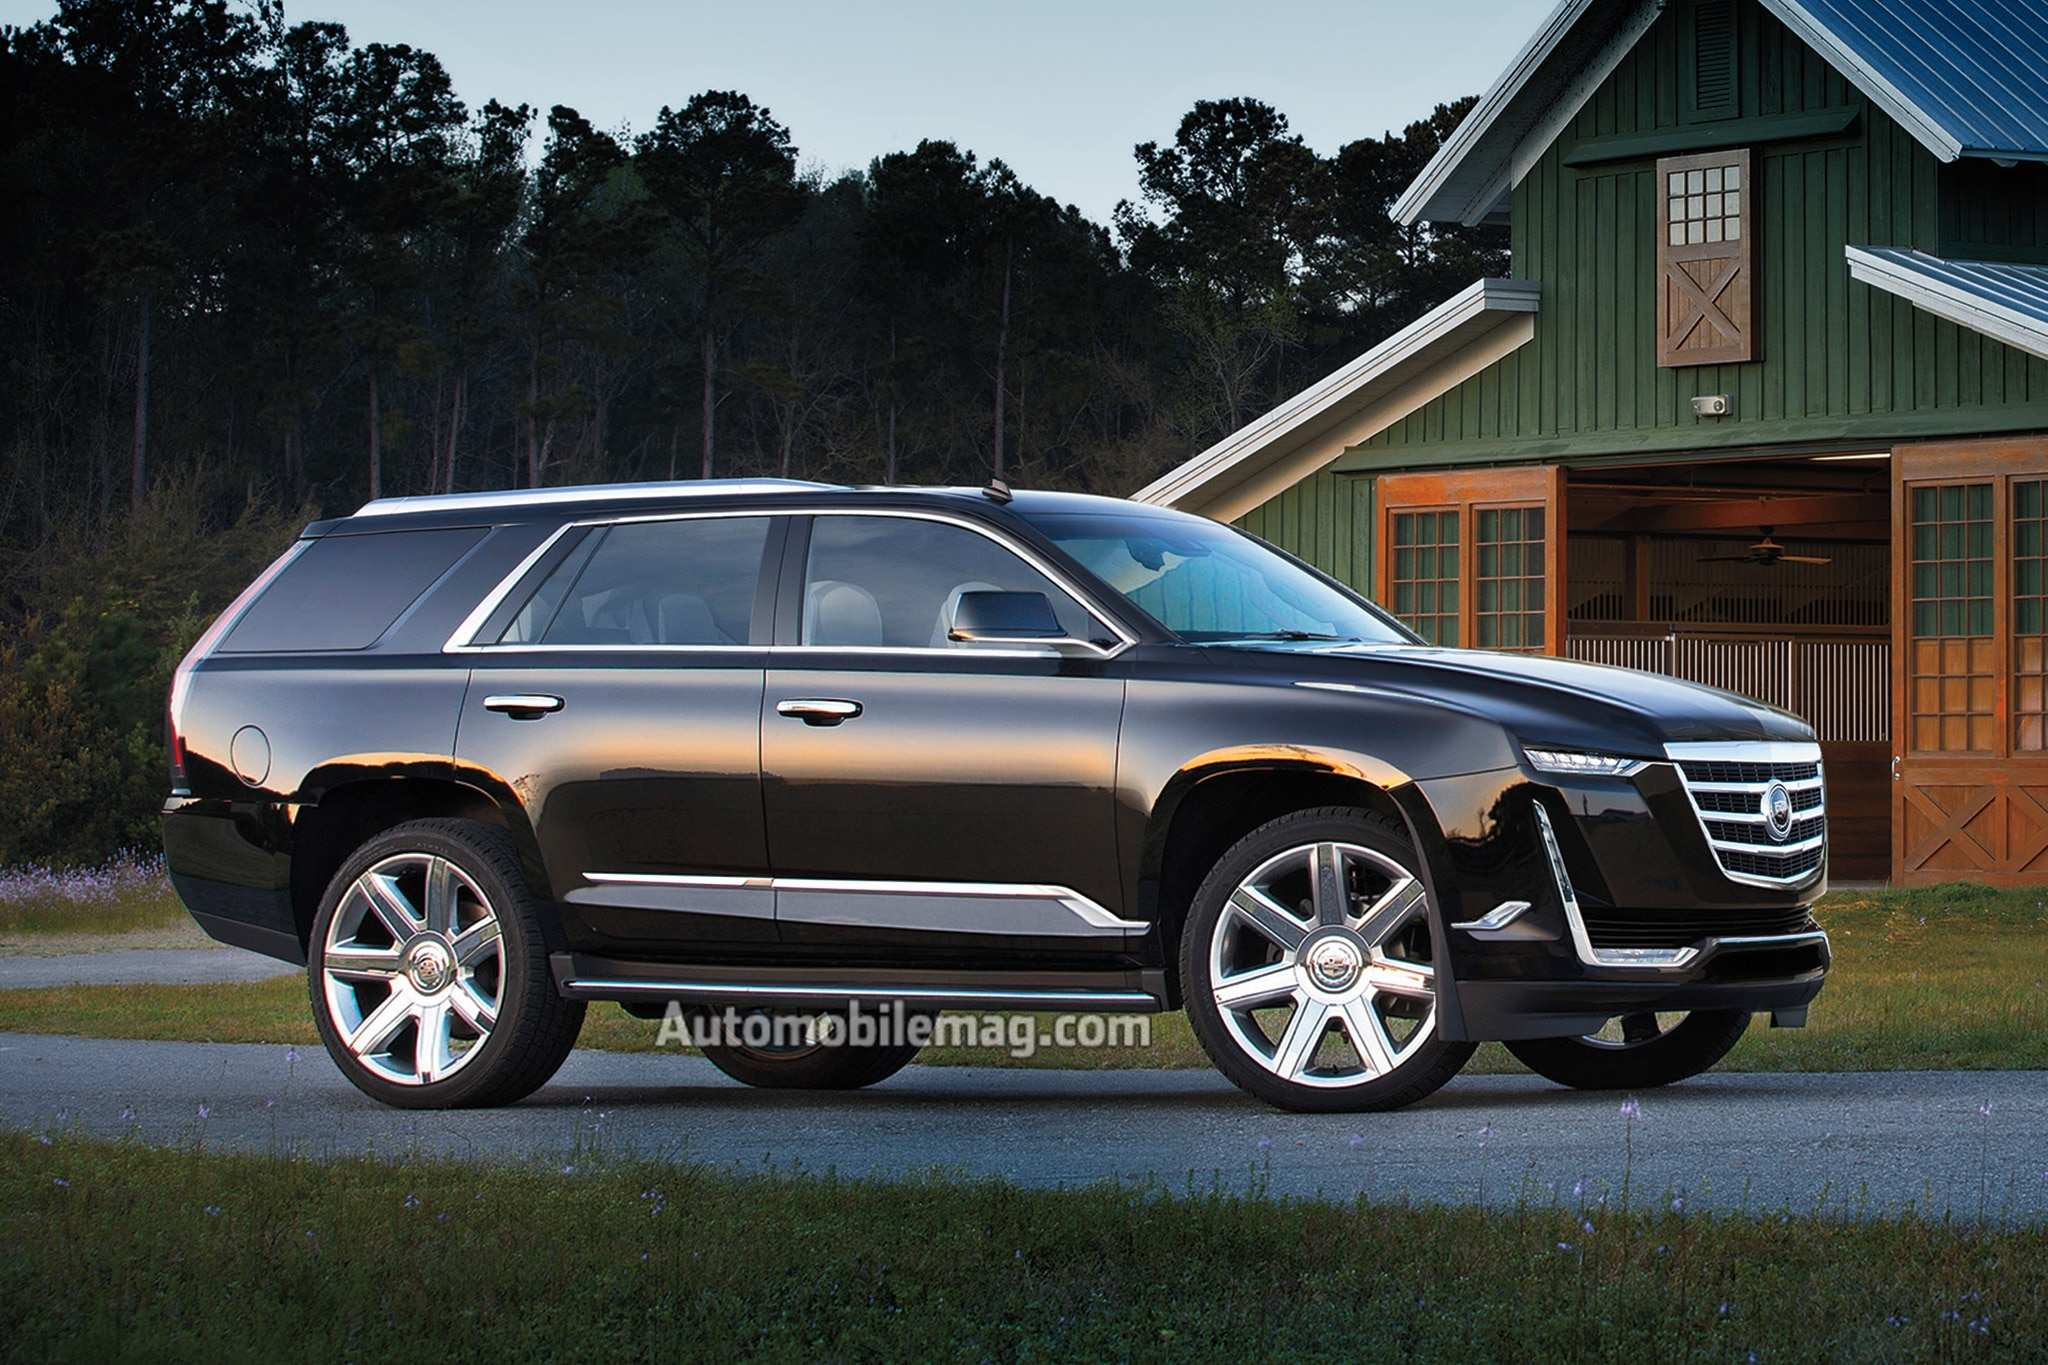 67 Best Review 2020 Cadillac Escalade History for 2020 Cadillac Escalade